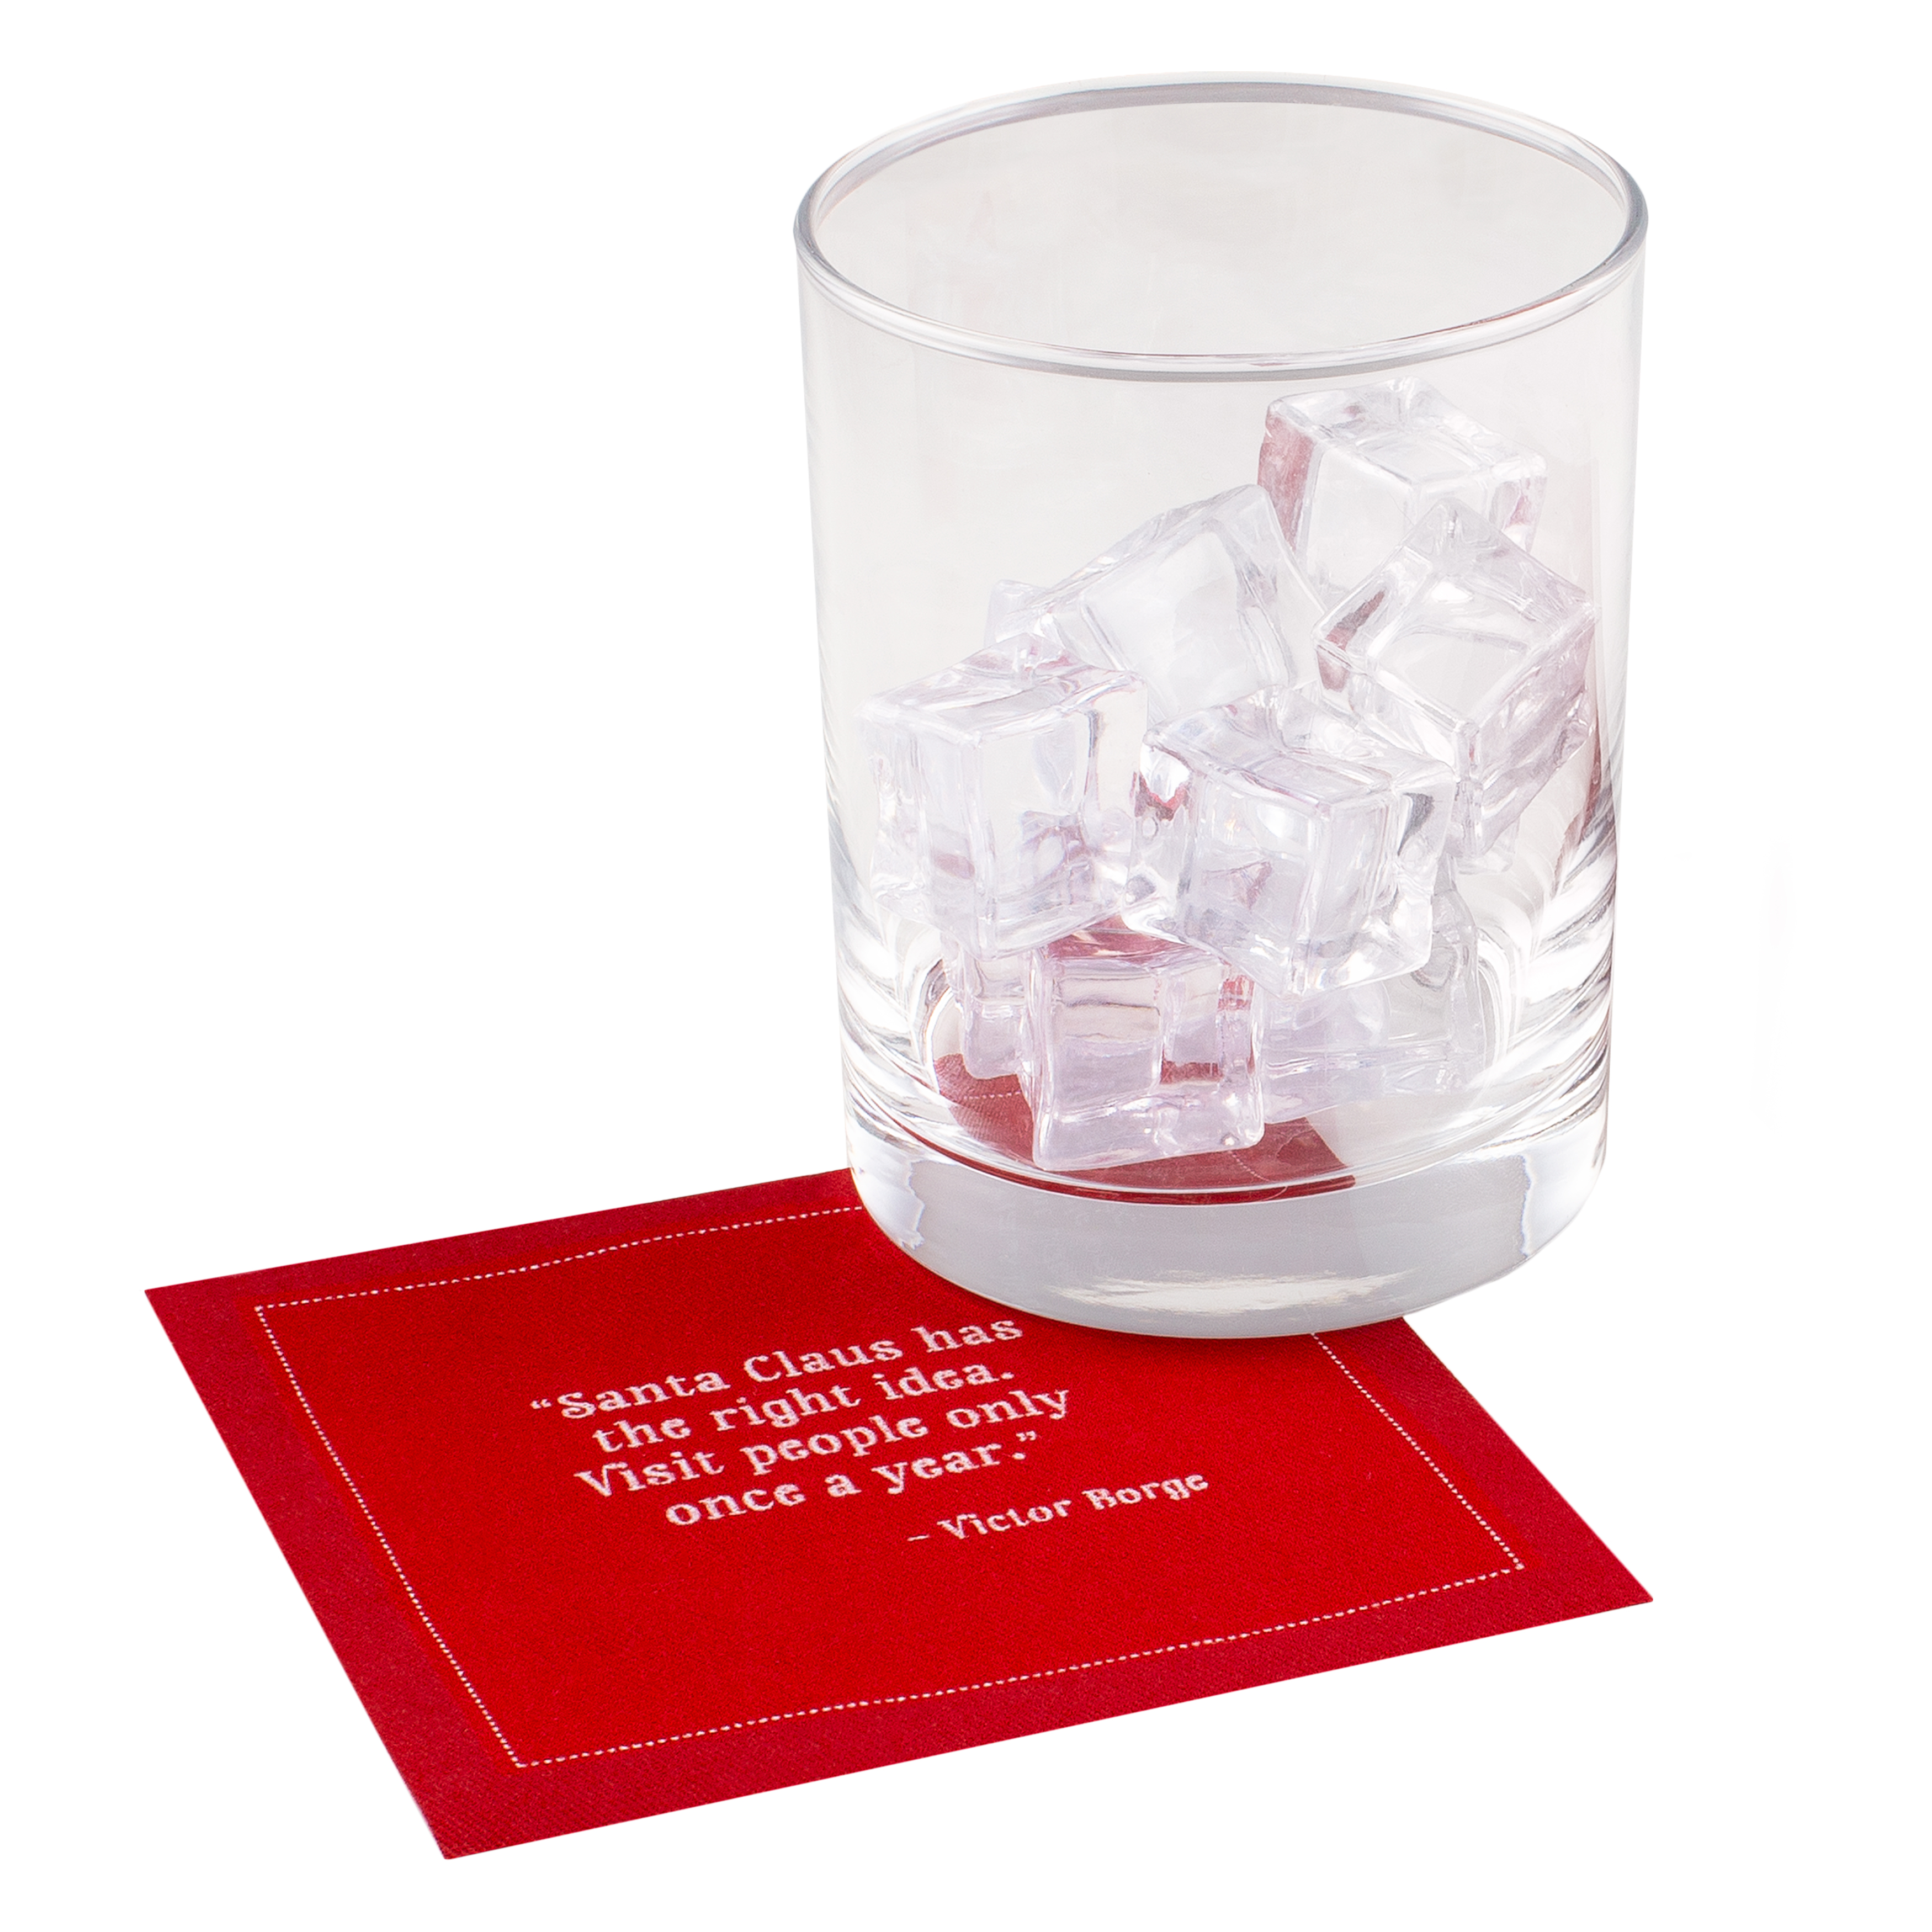 "Christmas Quotes Red Cotton Cocktail - 4.5"" x 4.5"" - 1200 Units - 50 units per pack"